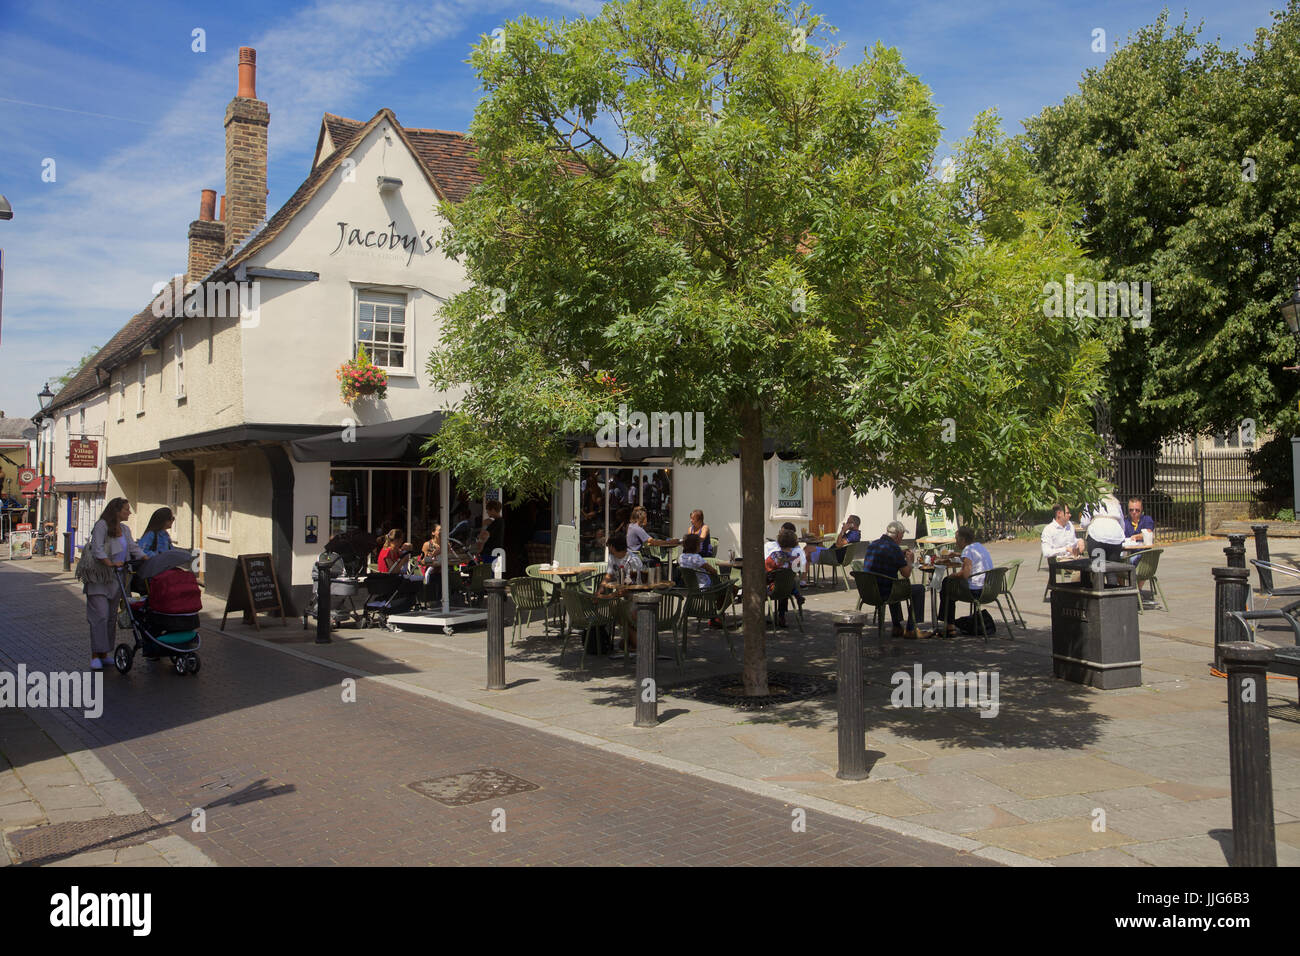 Jacobs's bar and restaurant in Ware, Hertfordshire, England - Stock Image